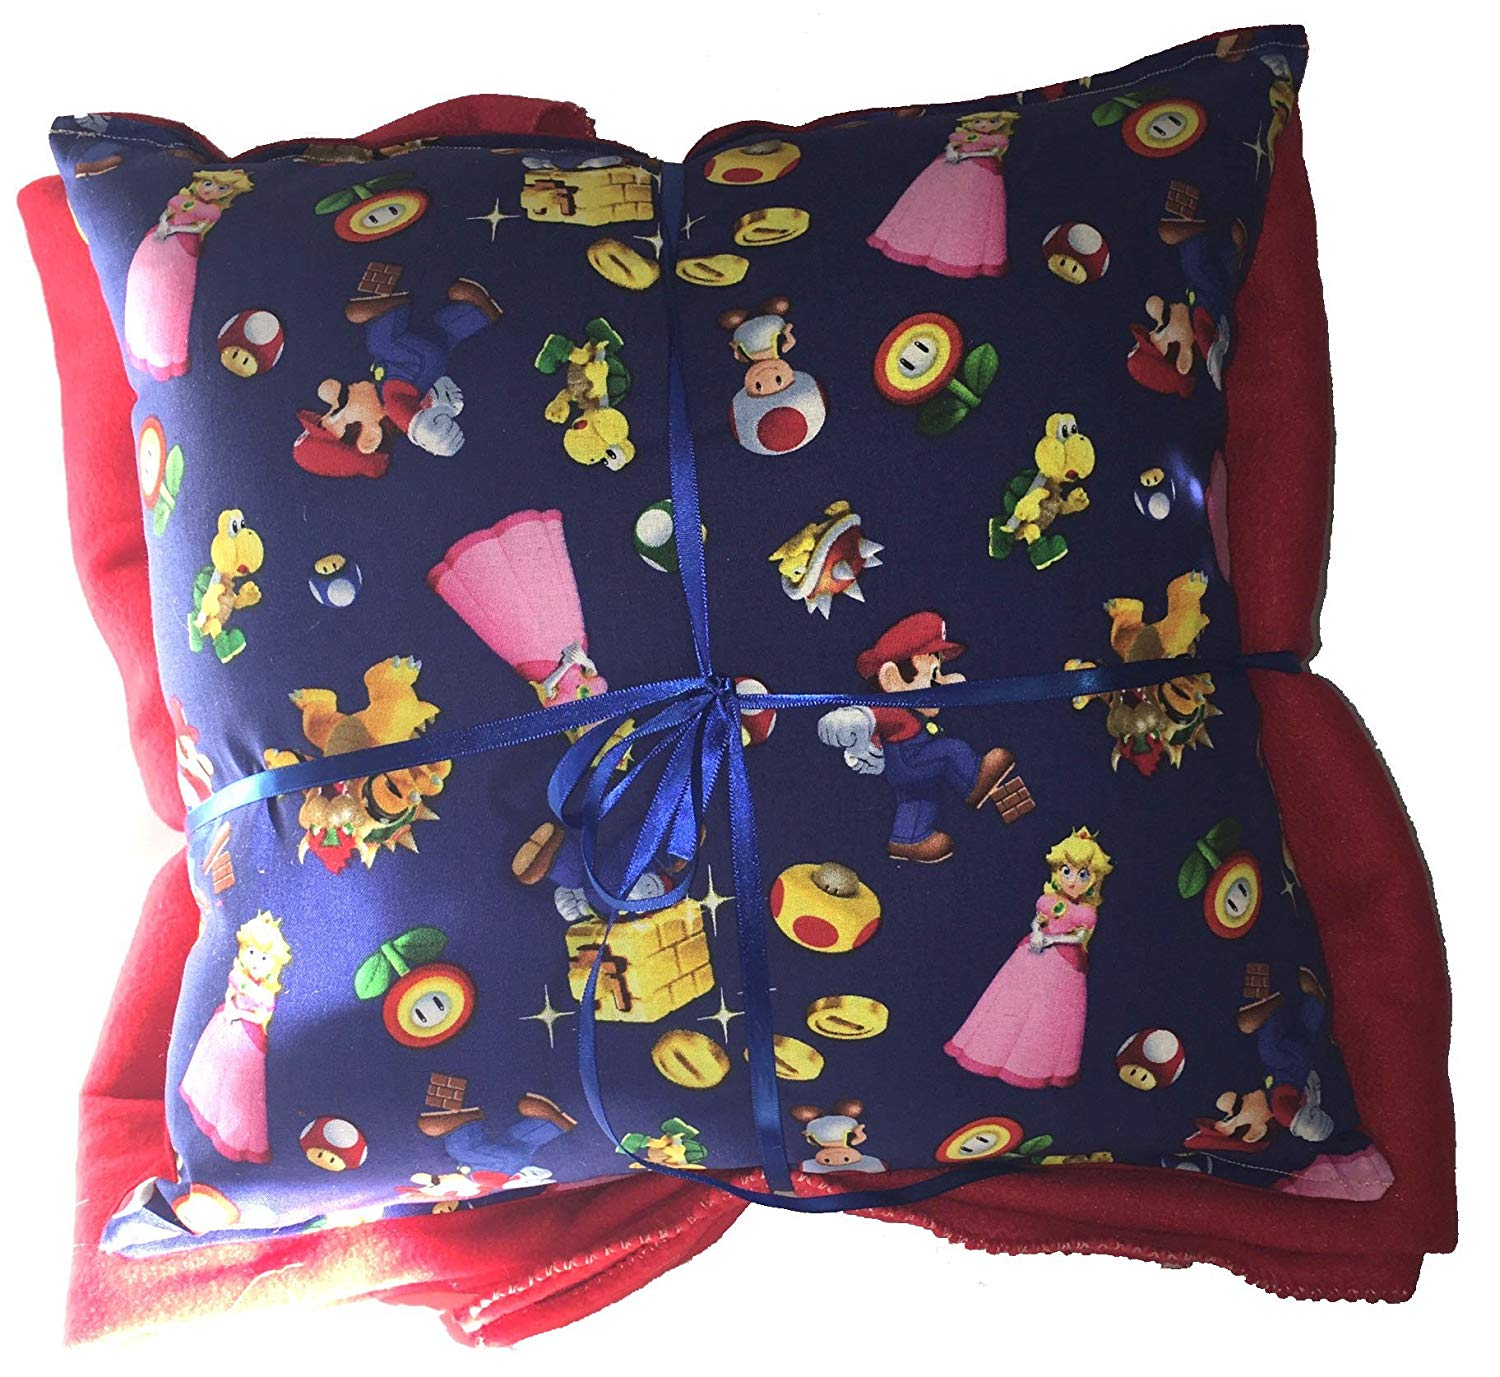 efffc0b0dc Get Quotations · Mario Brothers Pillow And Blanket Mario Run Pillow and  Blanket HANDMADE In USA Pillow Set